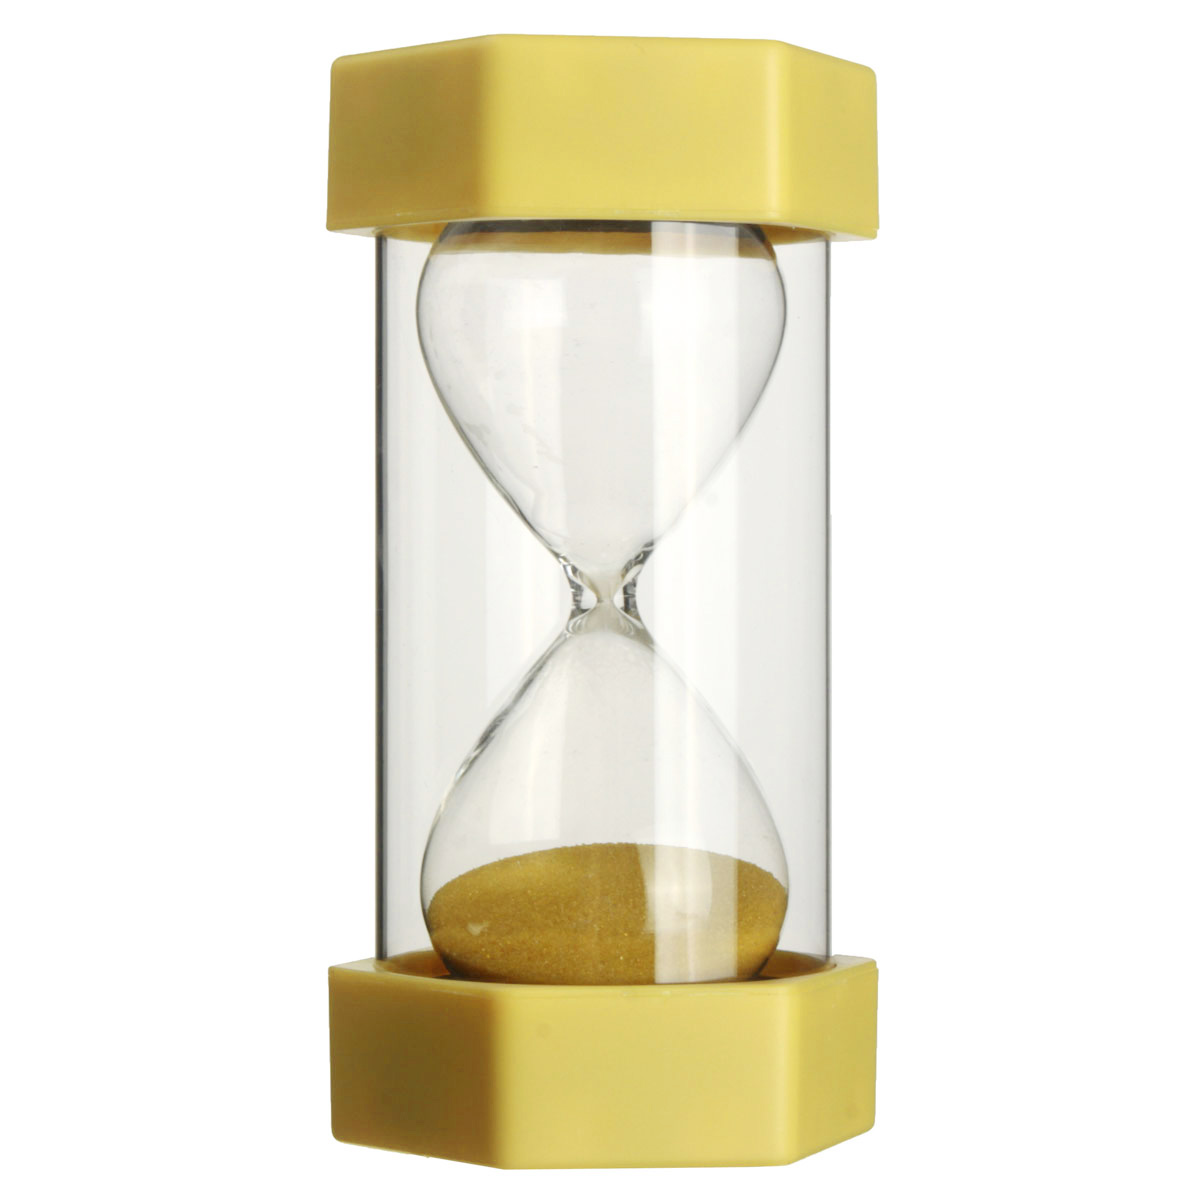 Sand Timer Hourglass Cooking Sport Clock Timer Sandglass 3 Minute Home Decor Toy(China (Mainland))